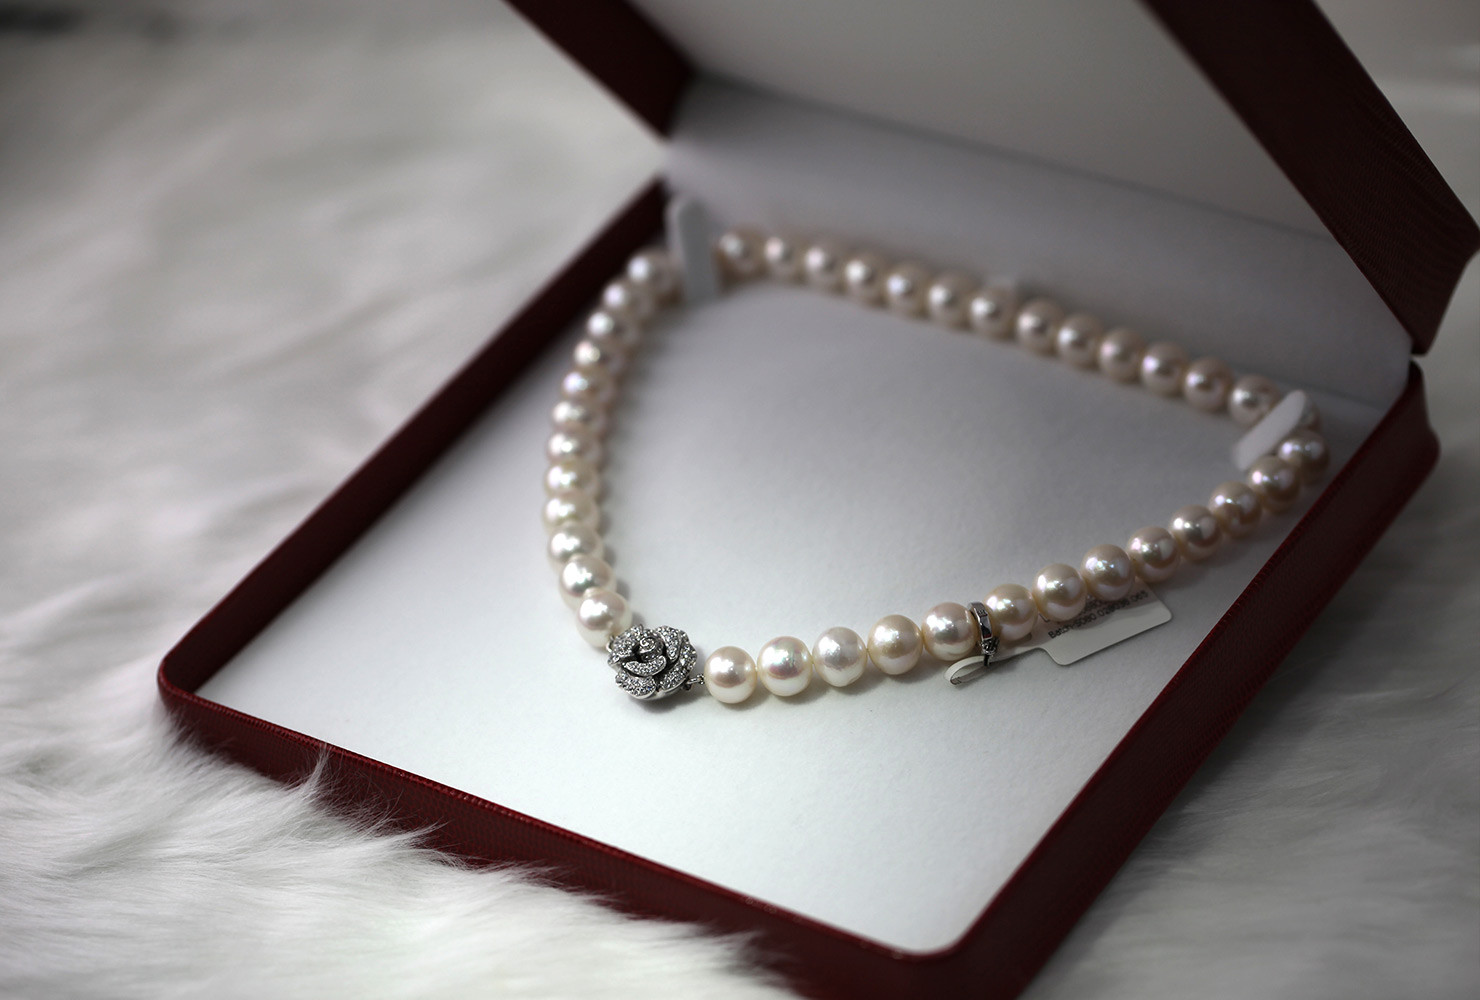 Wedding Anniversary Gift Ideas For Wife  Anniversary Gifts by Year to Celebrate Your Marriage